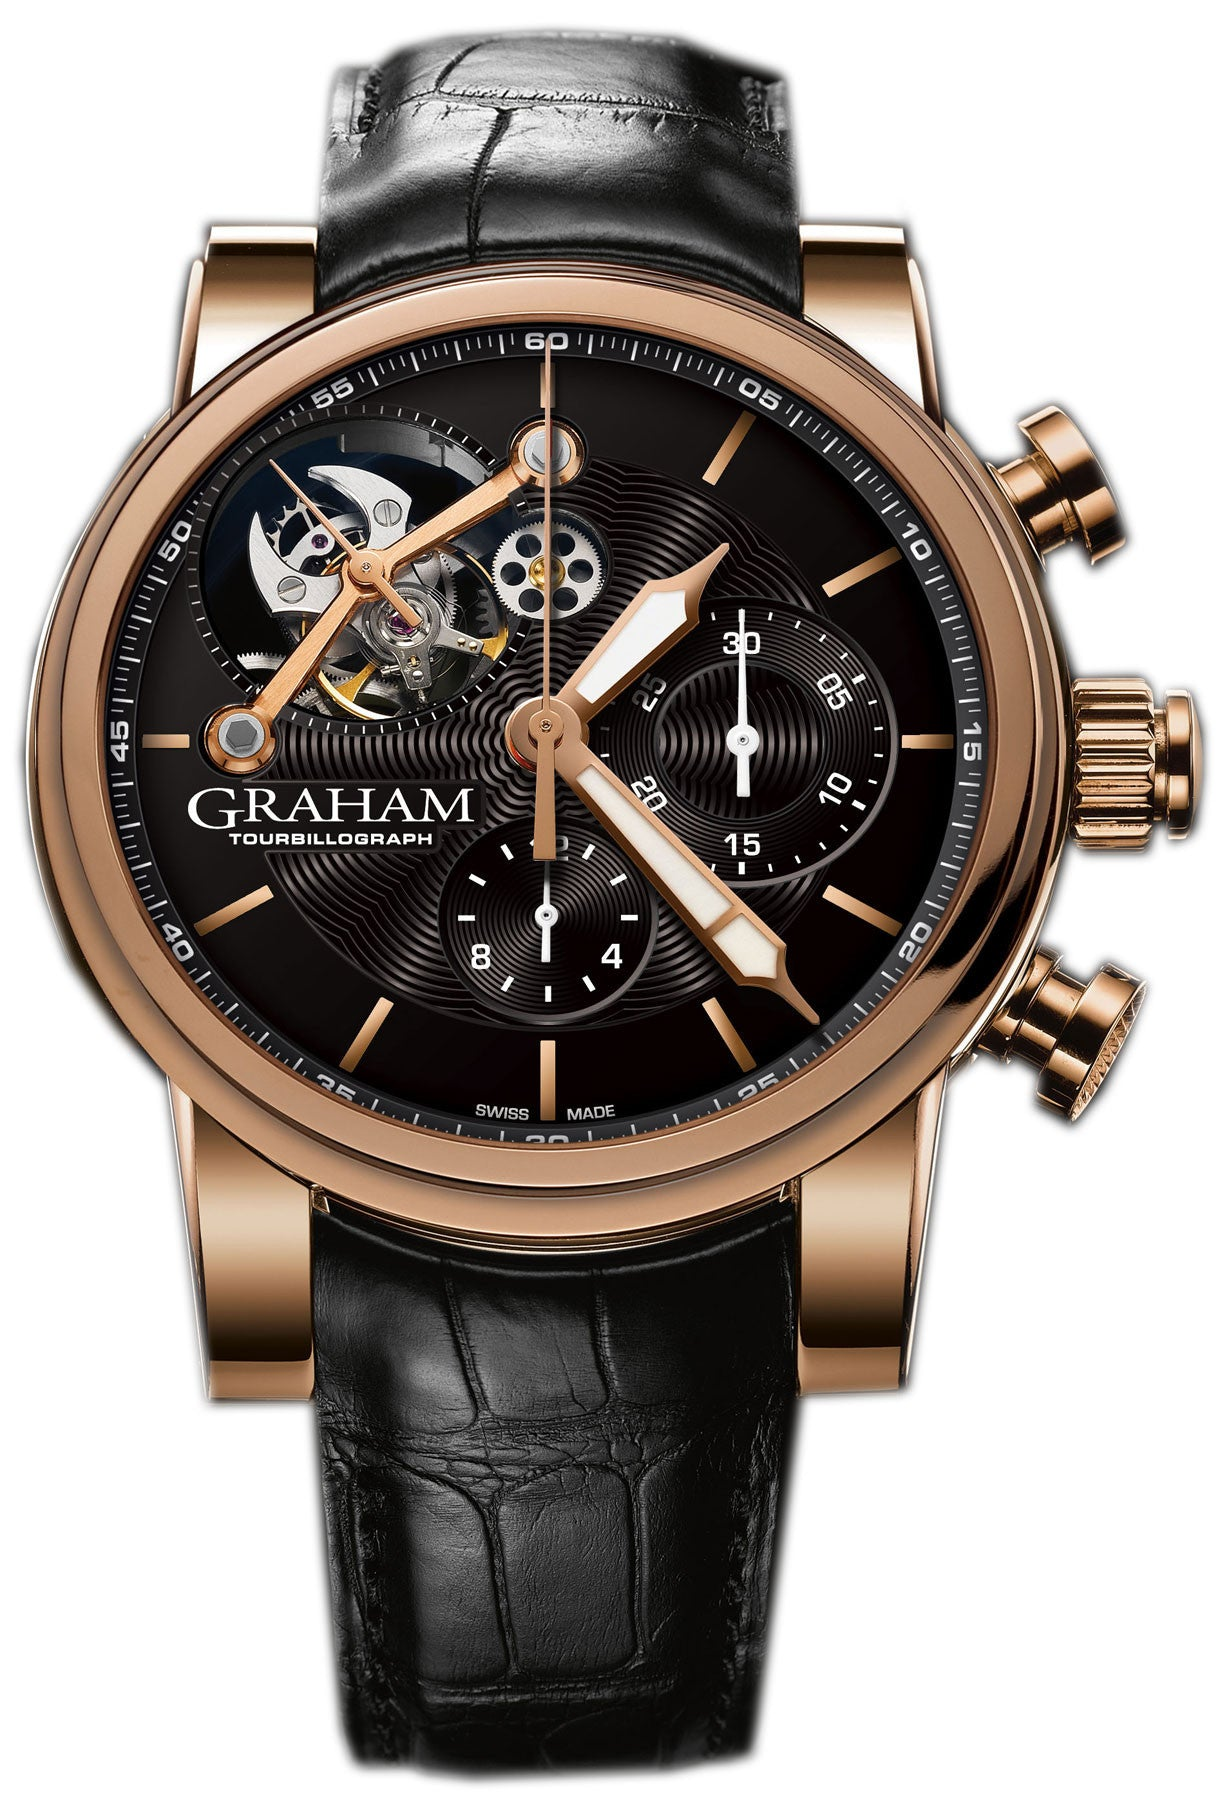 Graham Watch Silverstone Tourbillograph Woodcote Gold Limited Edition